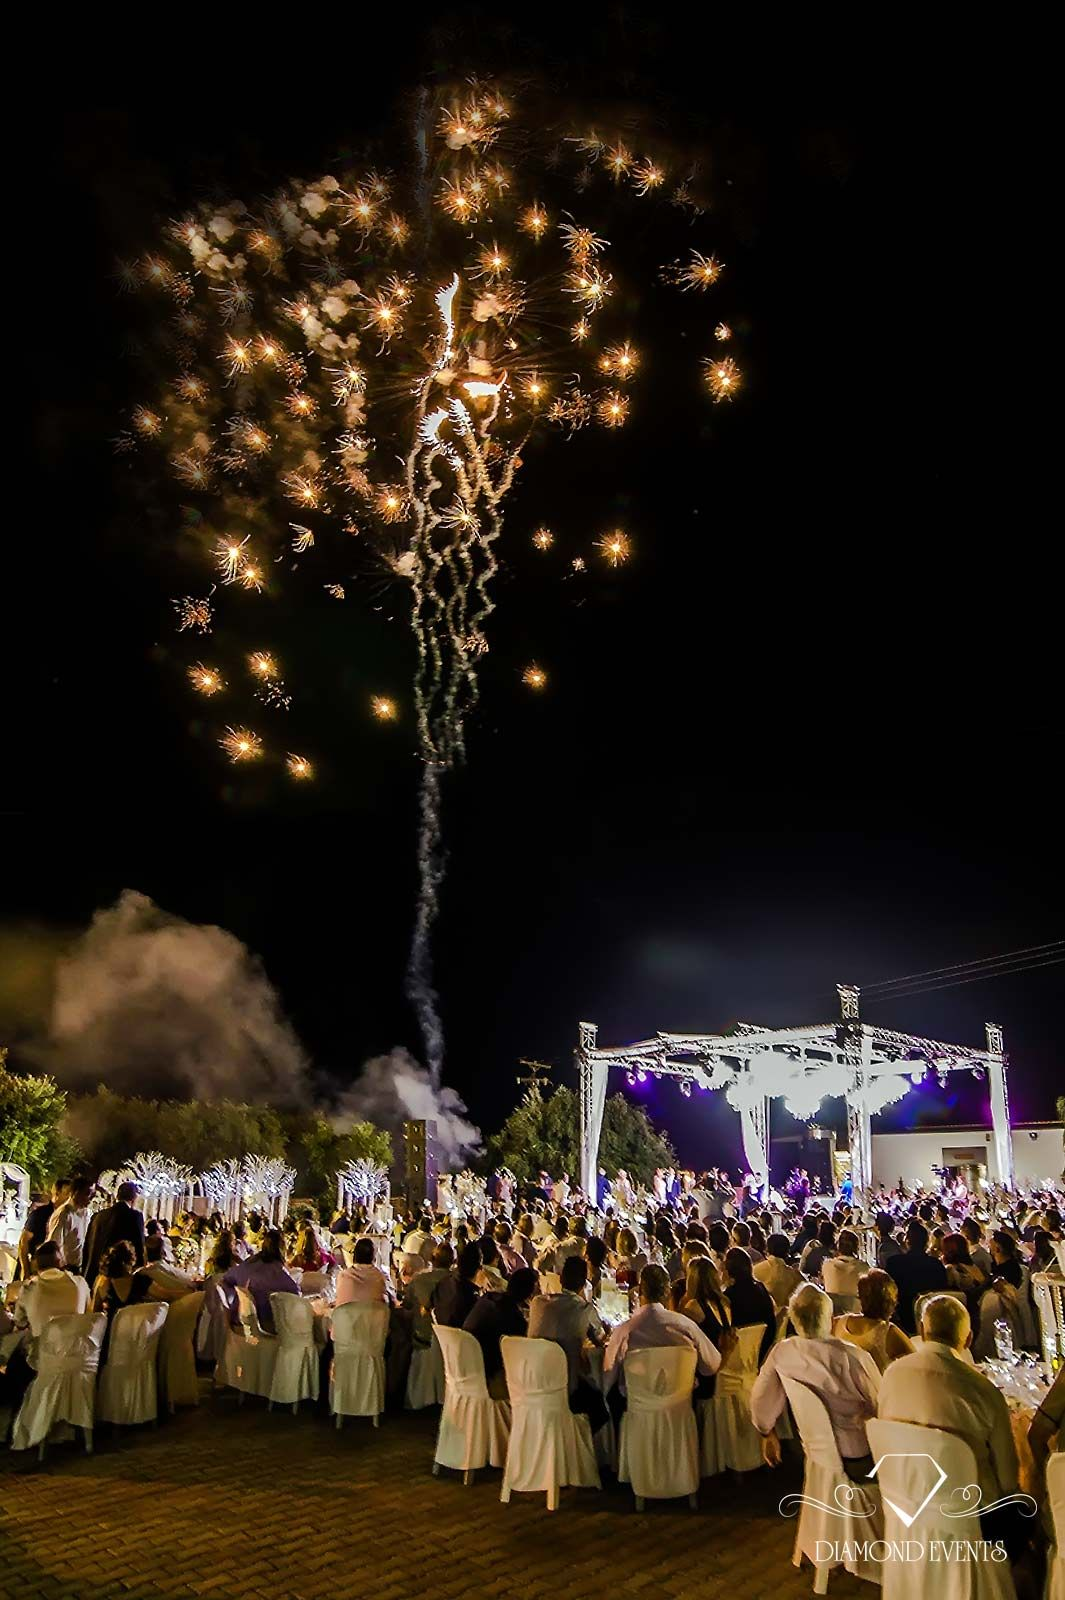 Wedding Fireworks Come In All Shapes And Sizes Greece